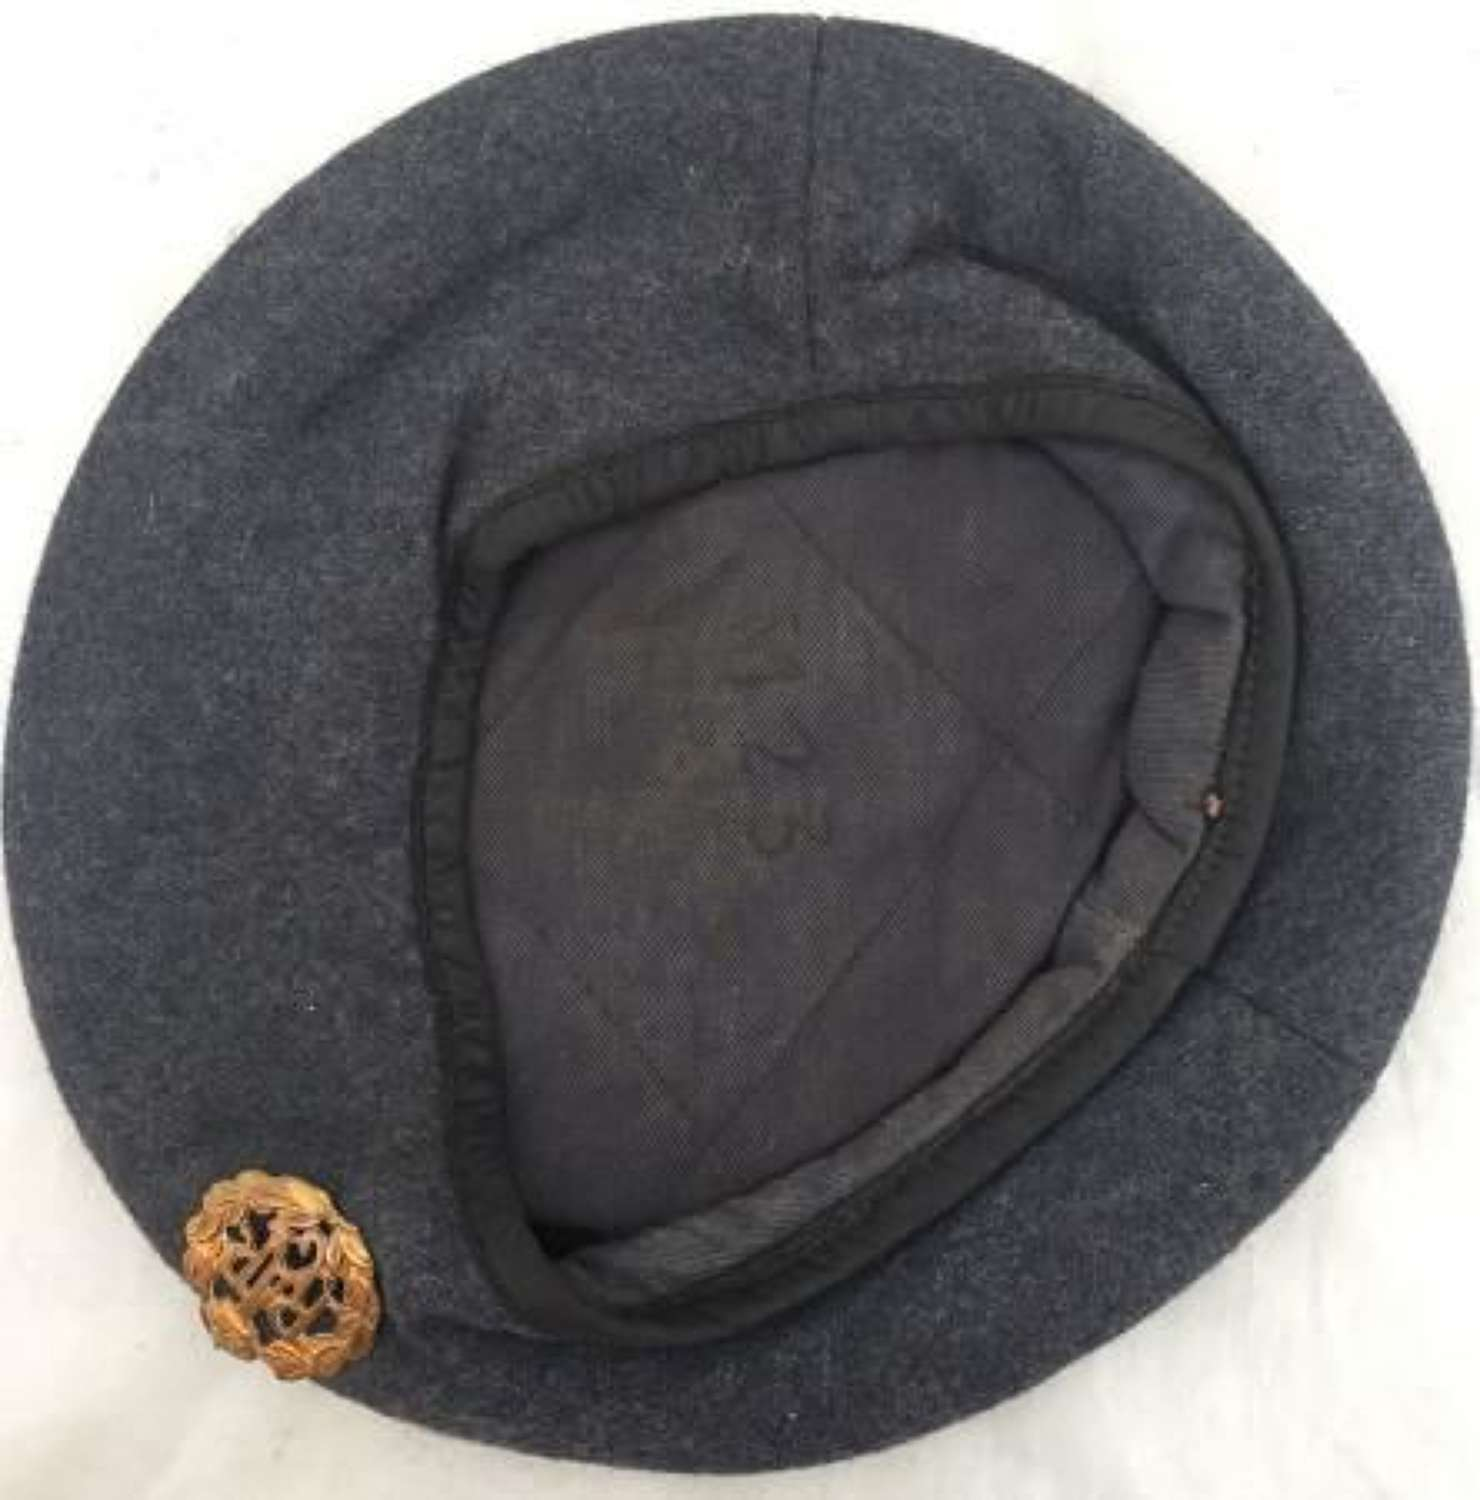 1947 Dated RAF OA Beret Size 6 3/8th